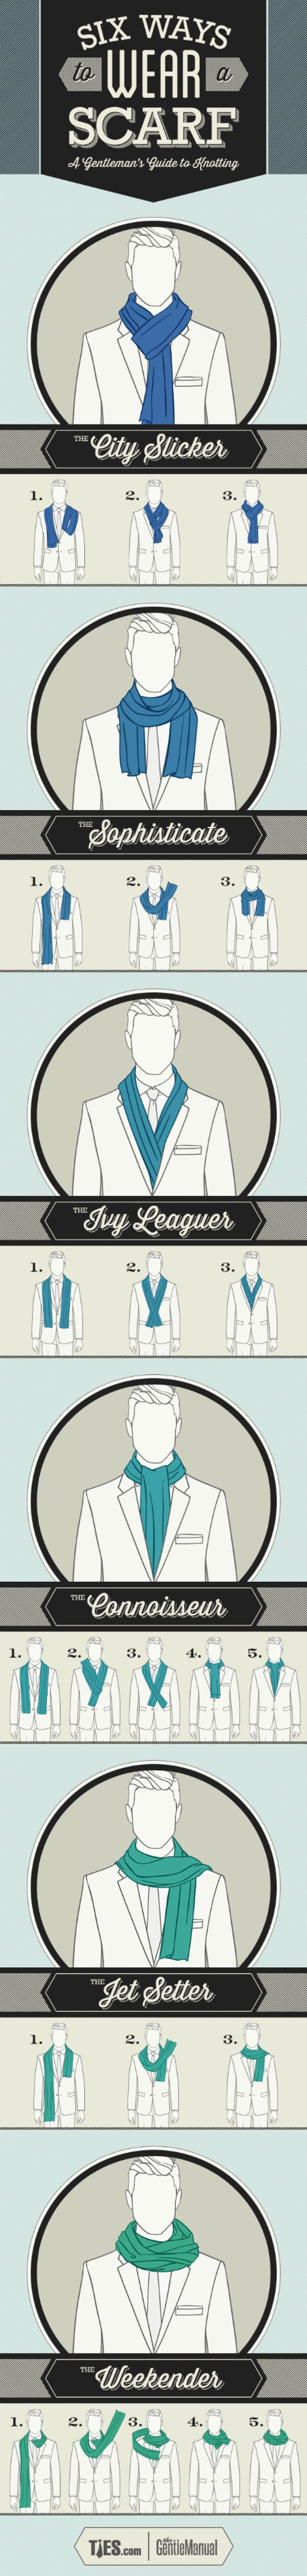 Gentlemanly, Suits, Interview, and Manly Tips - Imgur